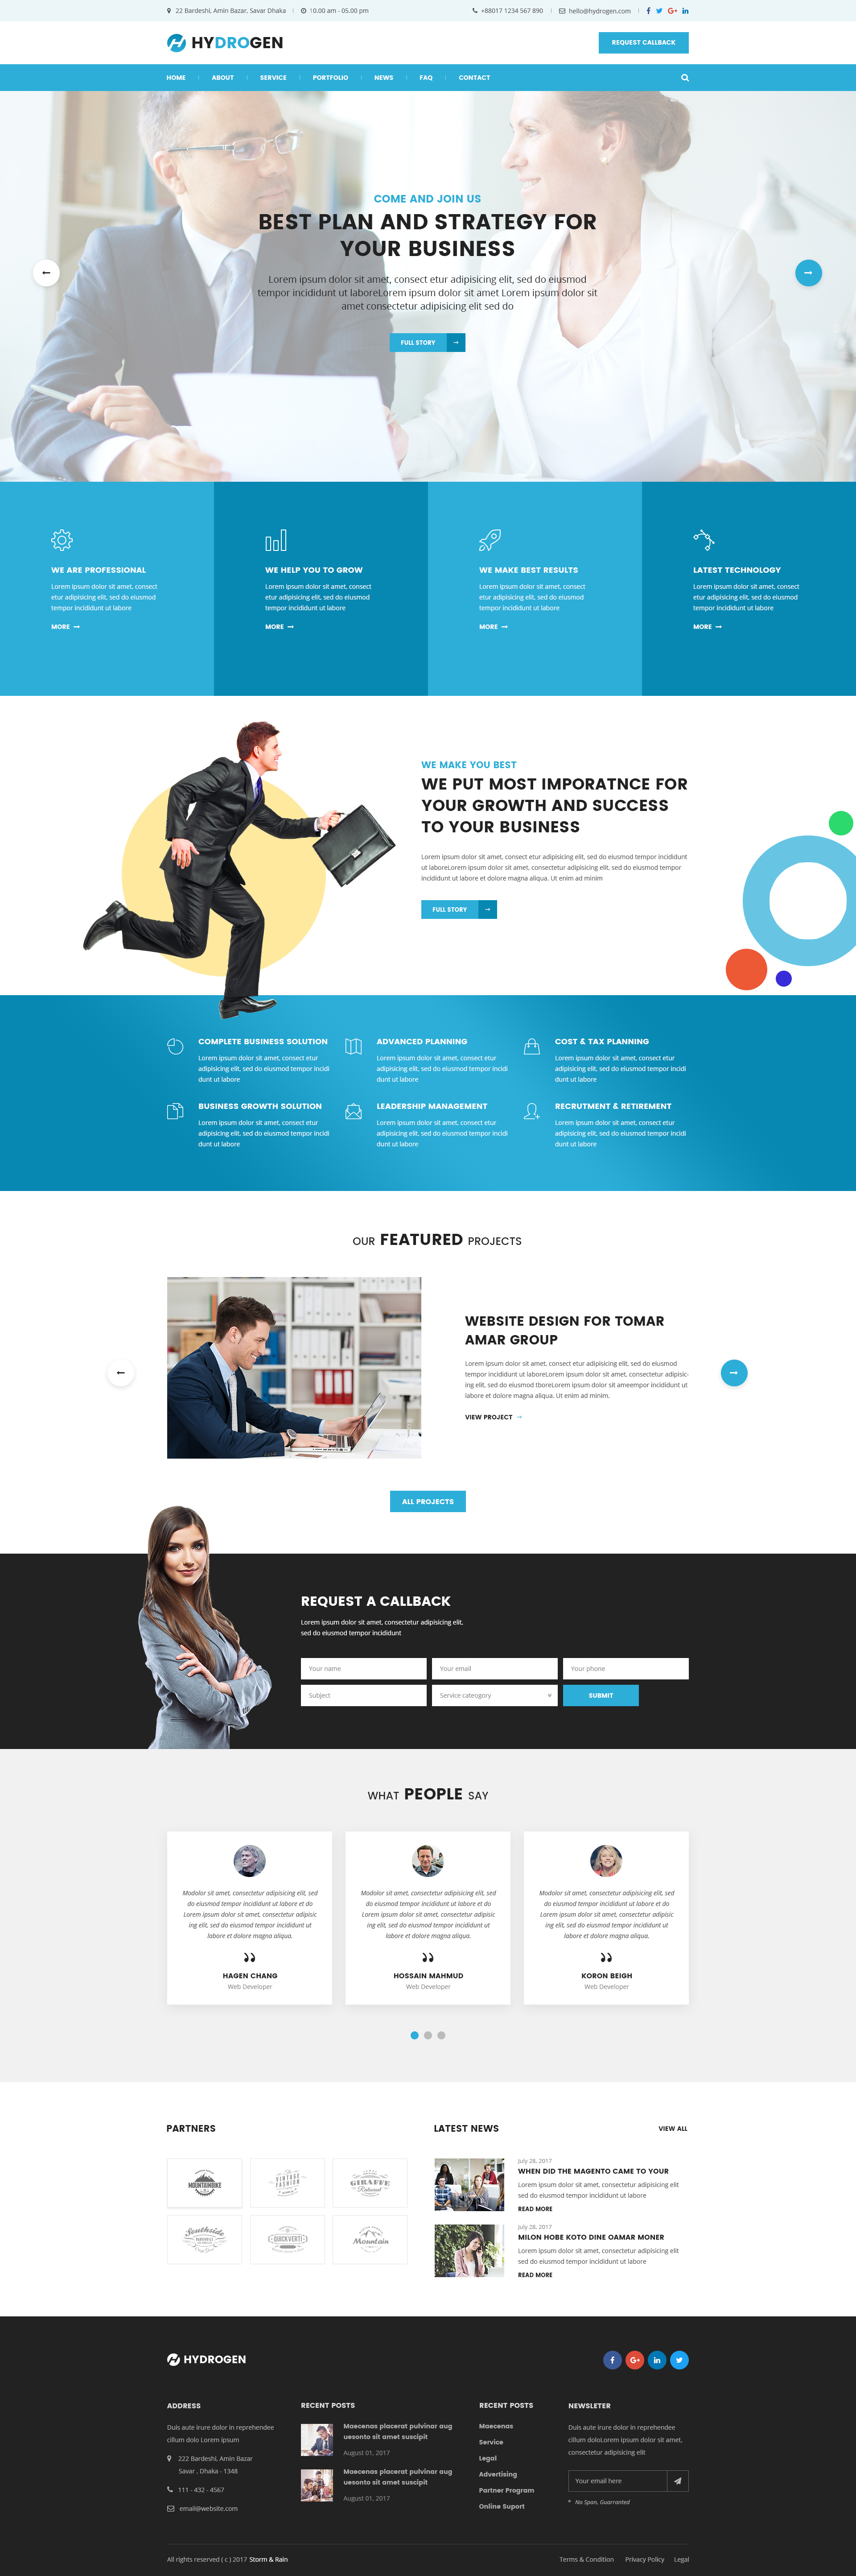 Hydrogen corporate business website psd template by stormandrain website psd template business corporate preview00previewg preview01home01g preview02home02g cheaphphosting Gallery